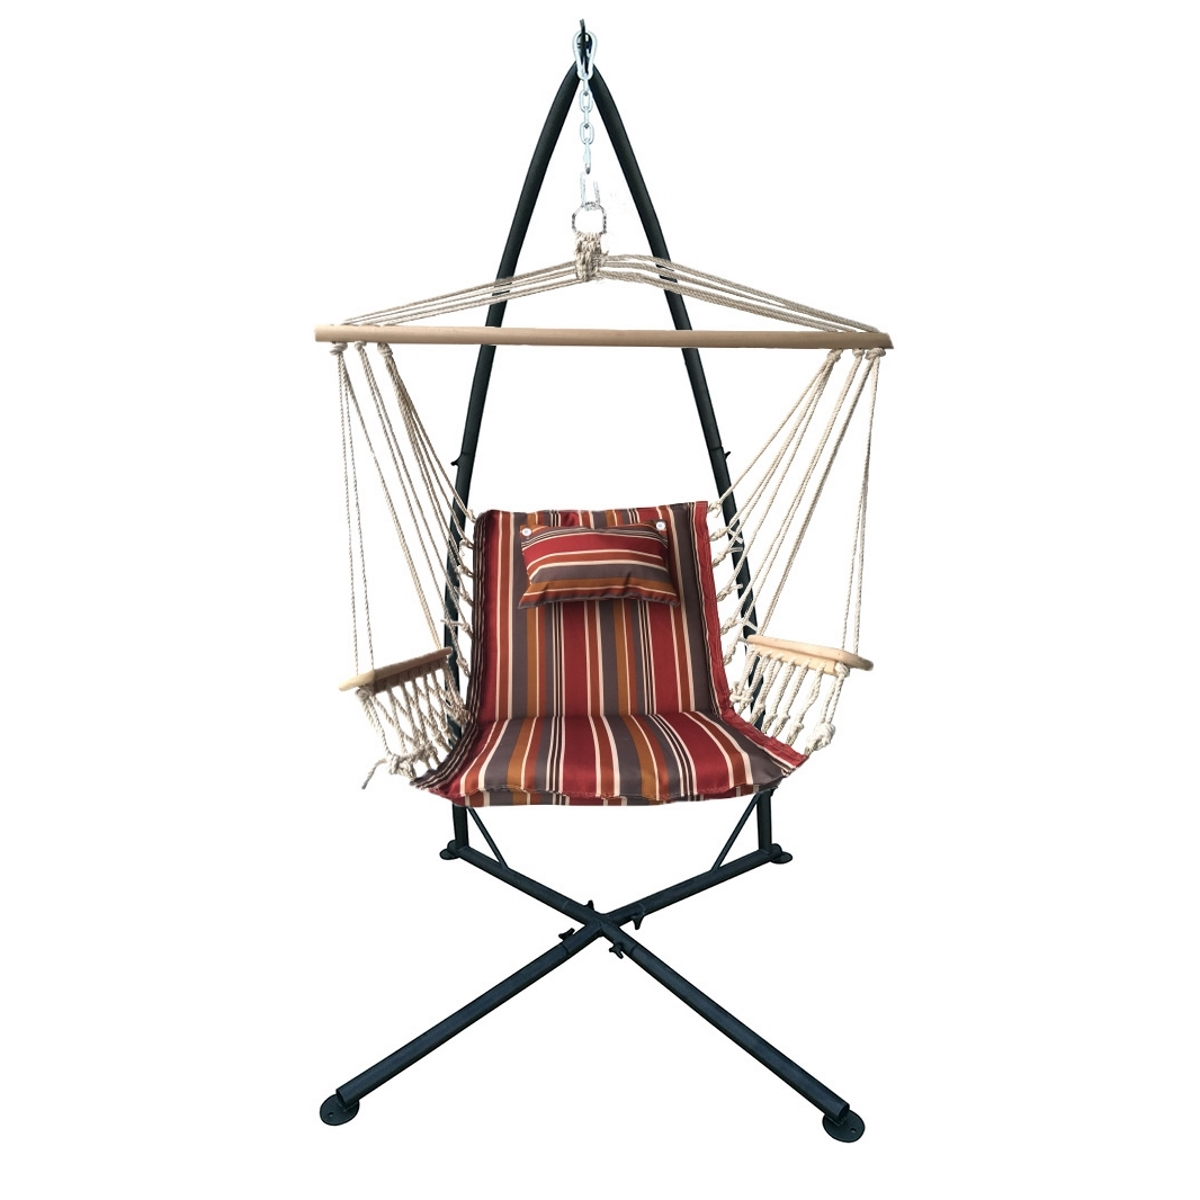 Hammock Chair Stand--$129.99 --- Free Shipping! (Chair Not Included!)